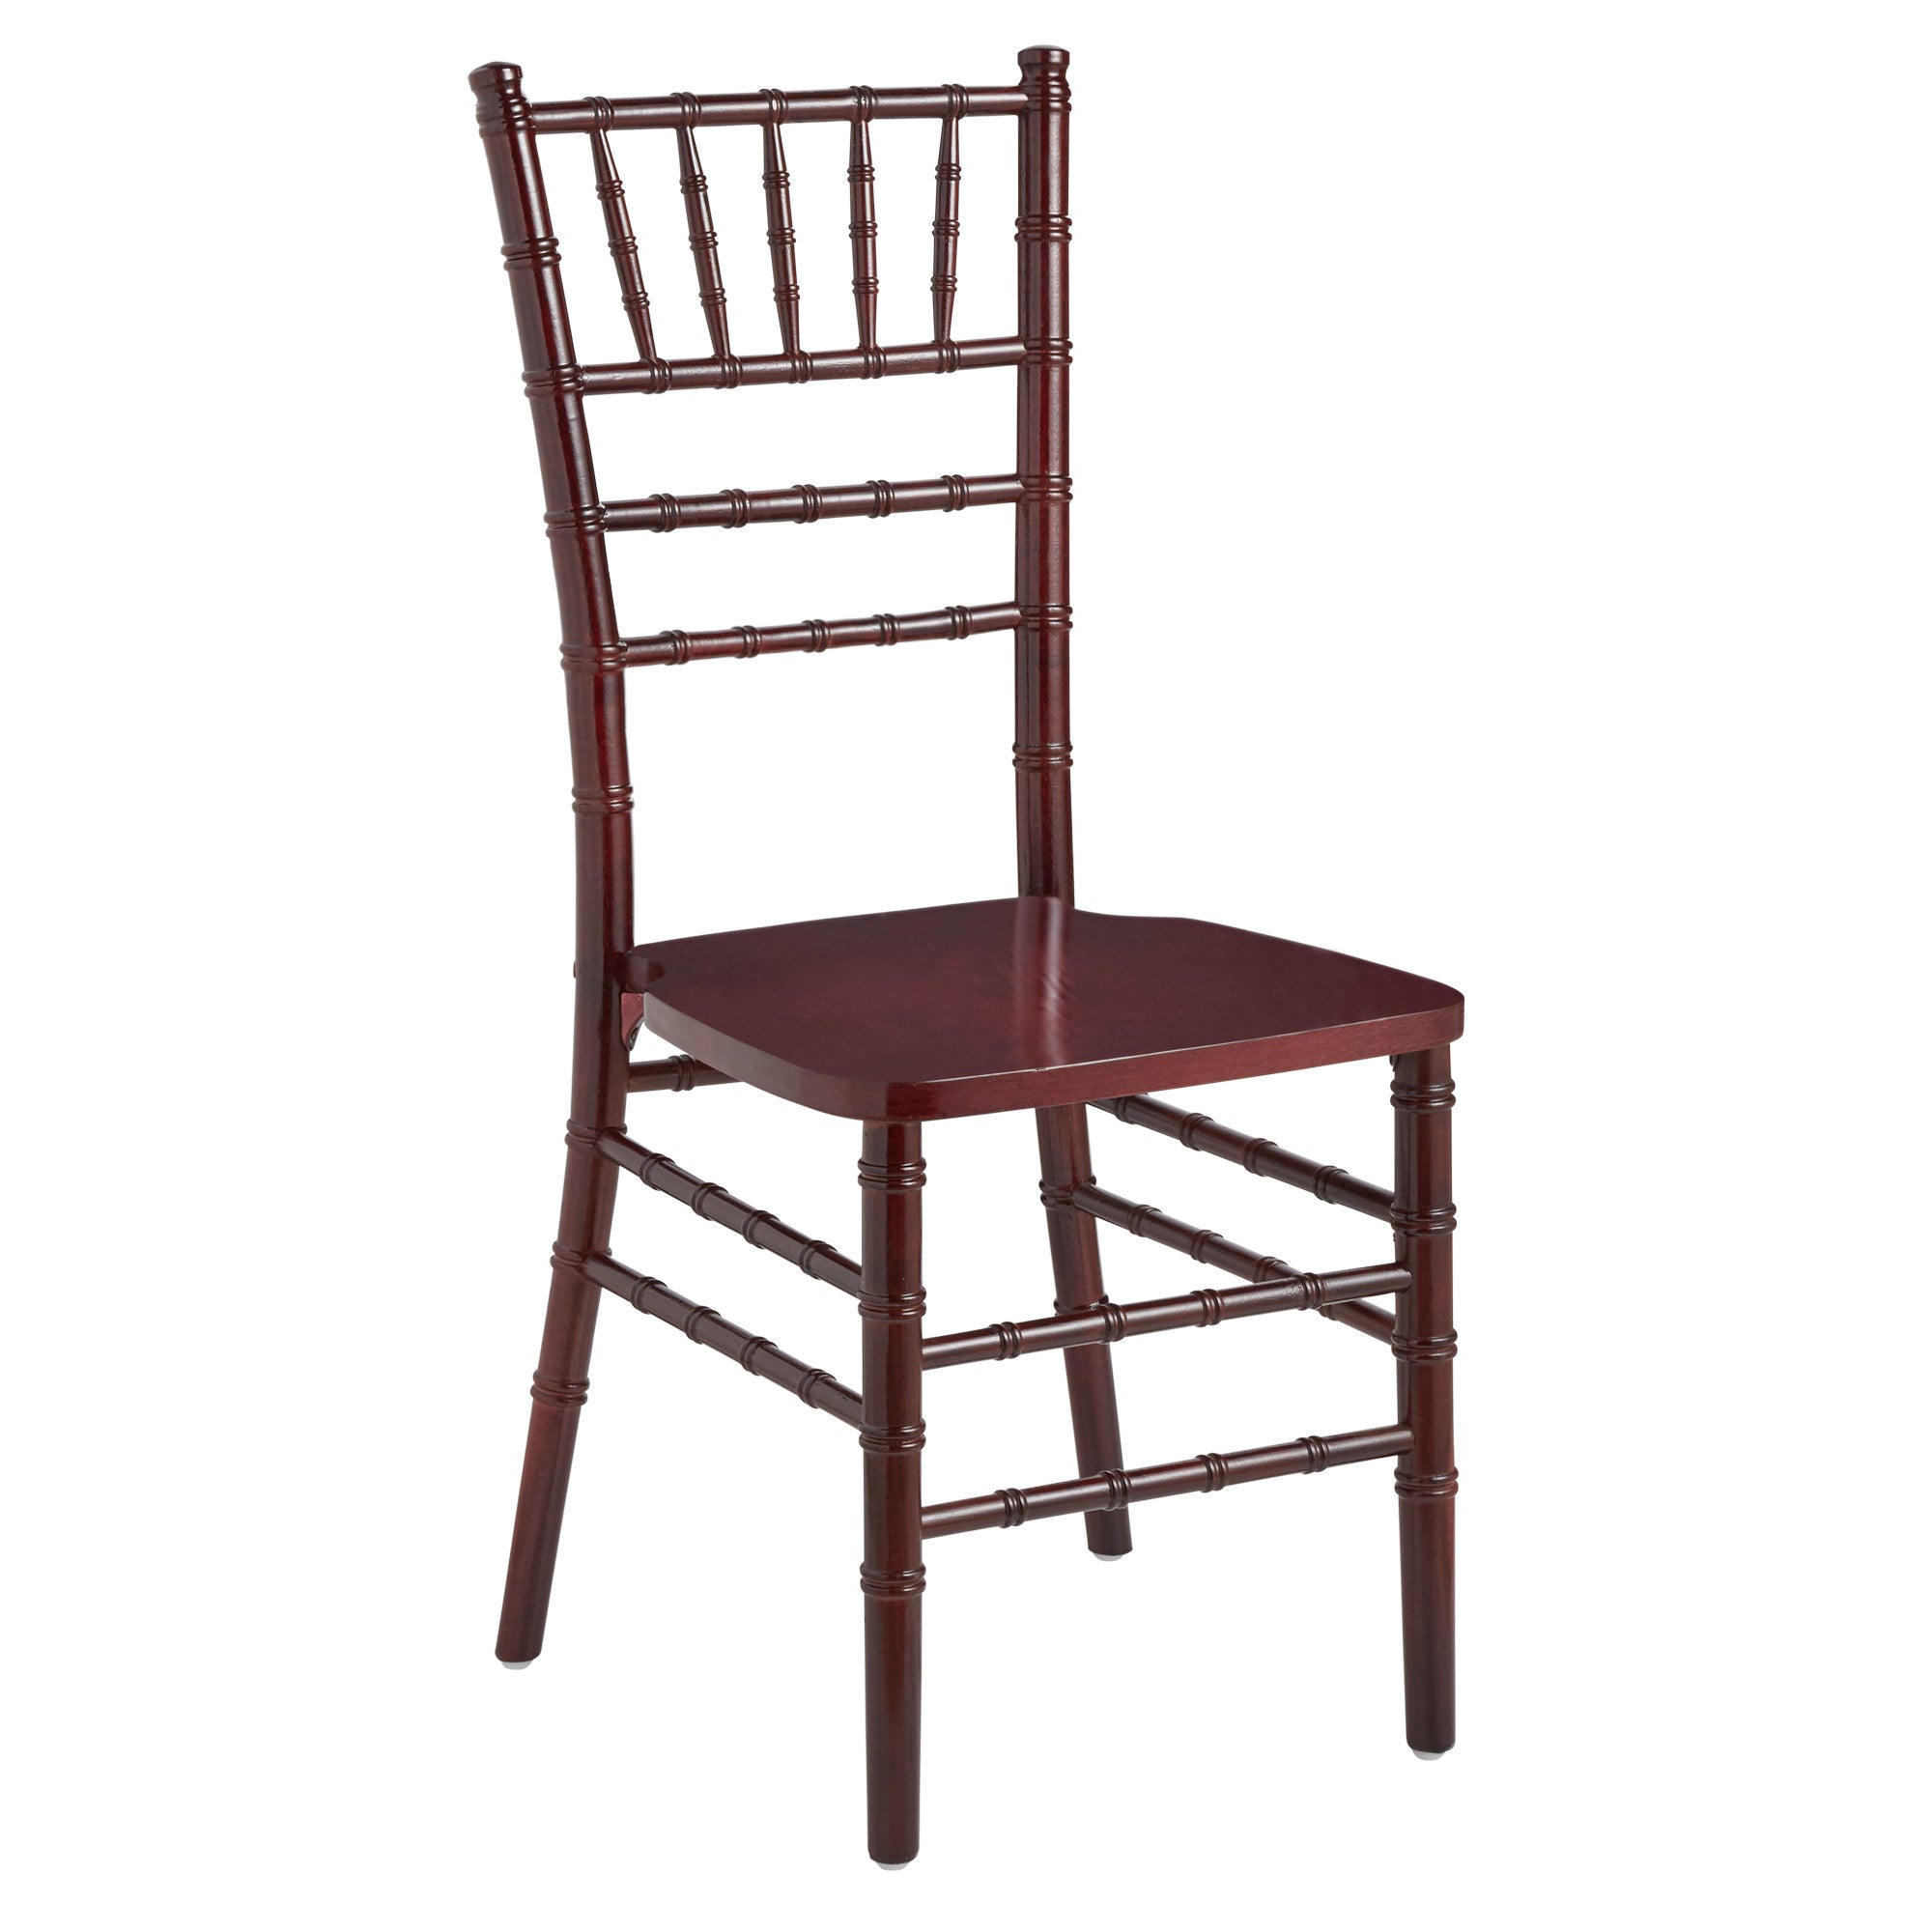 Fruitwood Chiavari Chairs For Rent Orange County Ca On Call Event Rentals